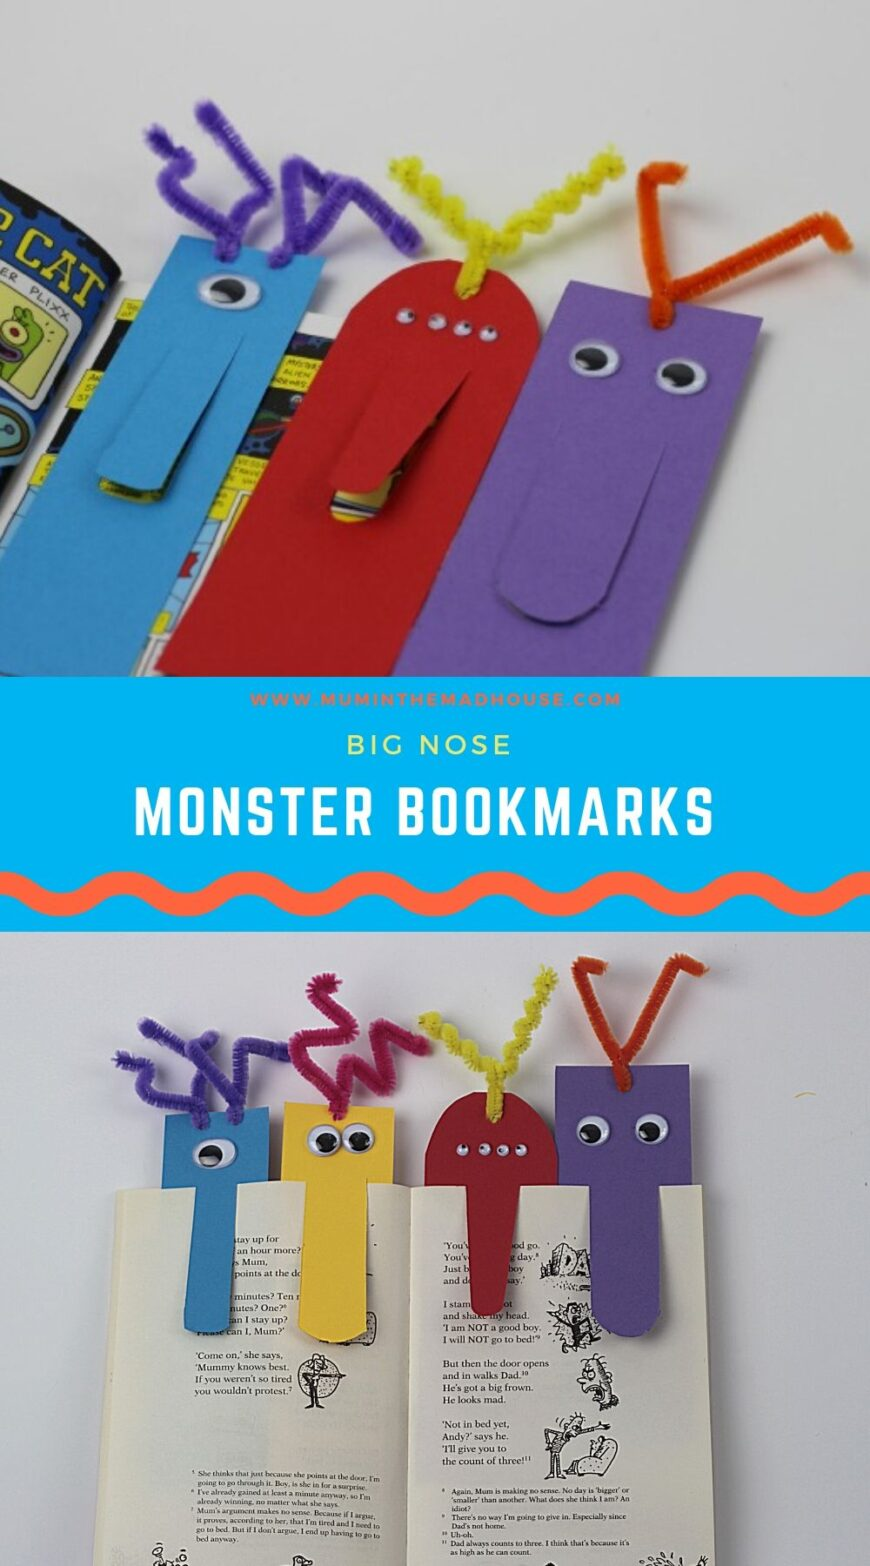 Books will be a whole lot more fun when your kids make their own cute Big Nose Monster Bookmarks